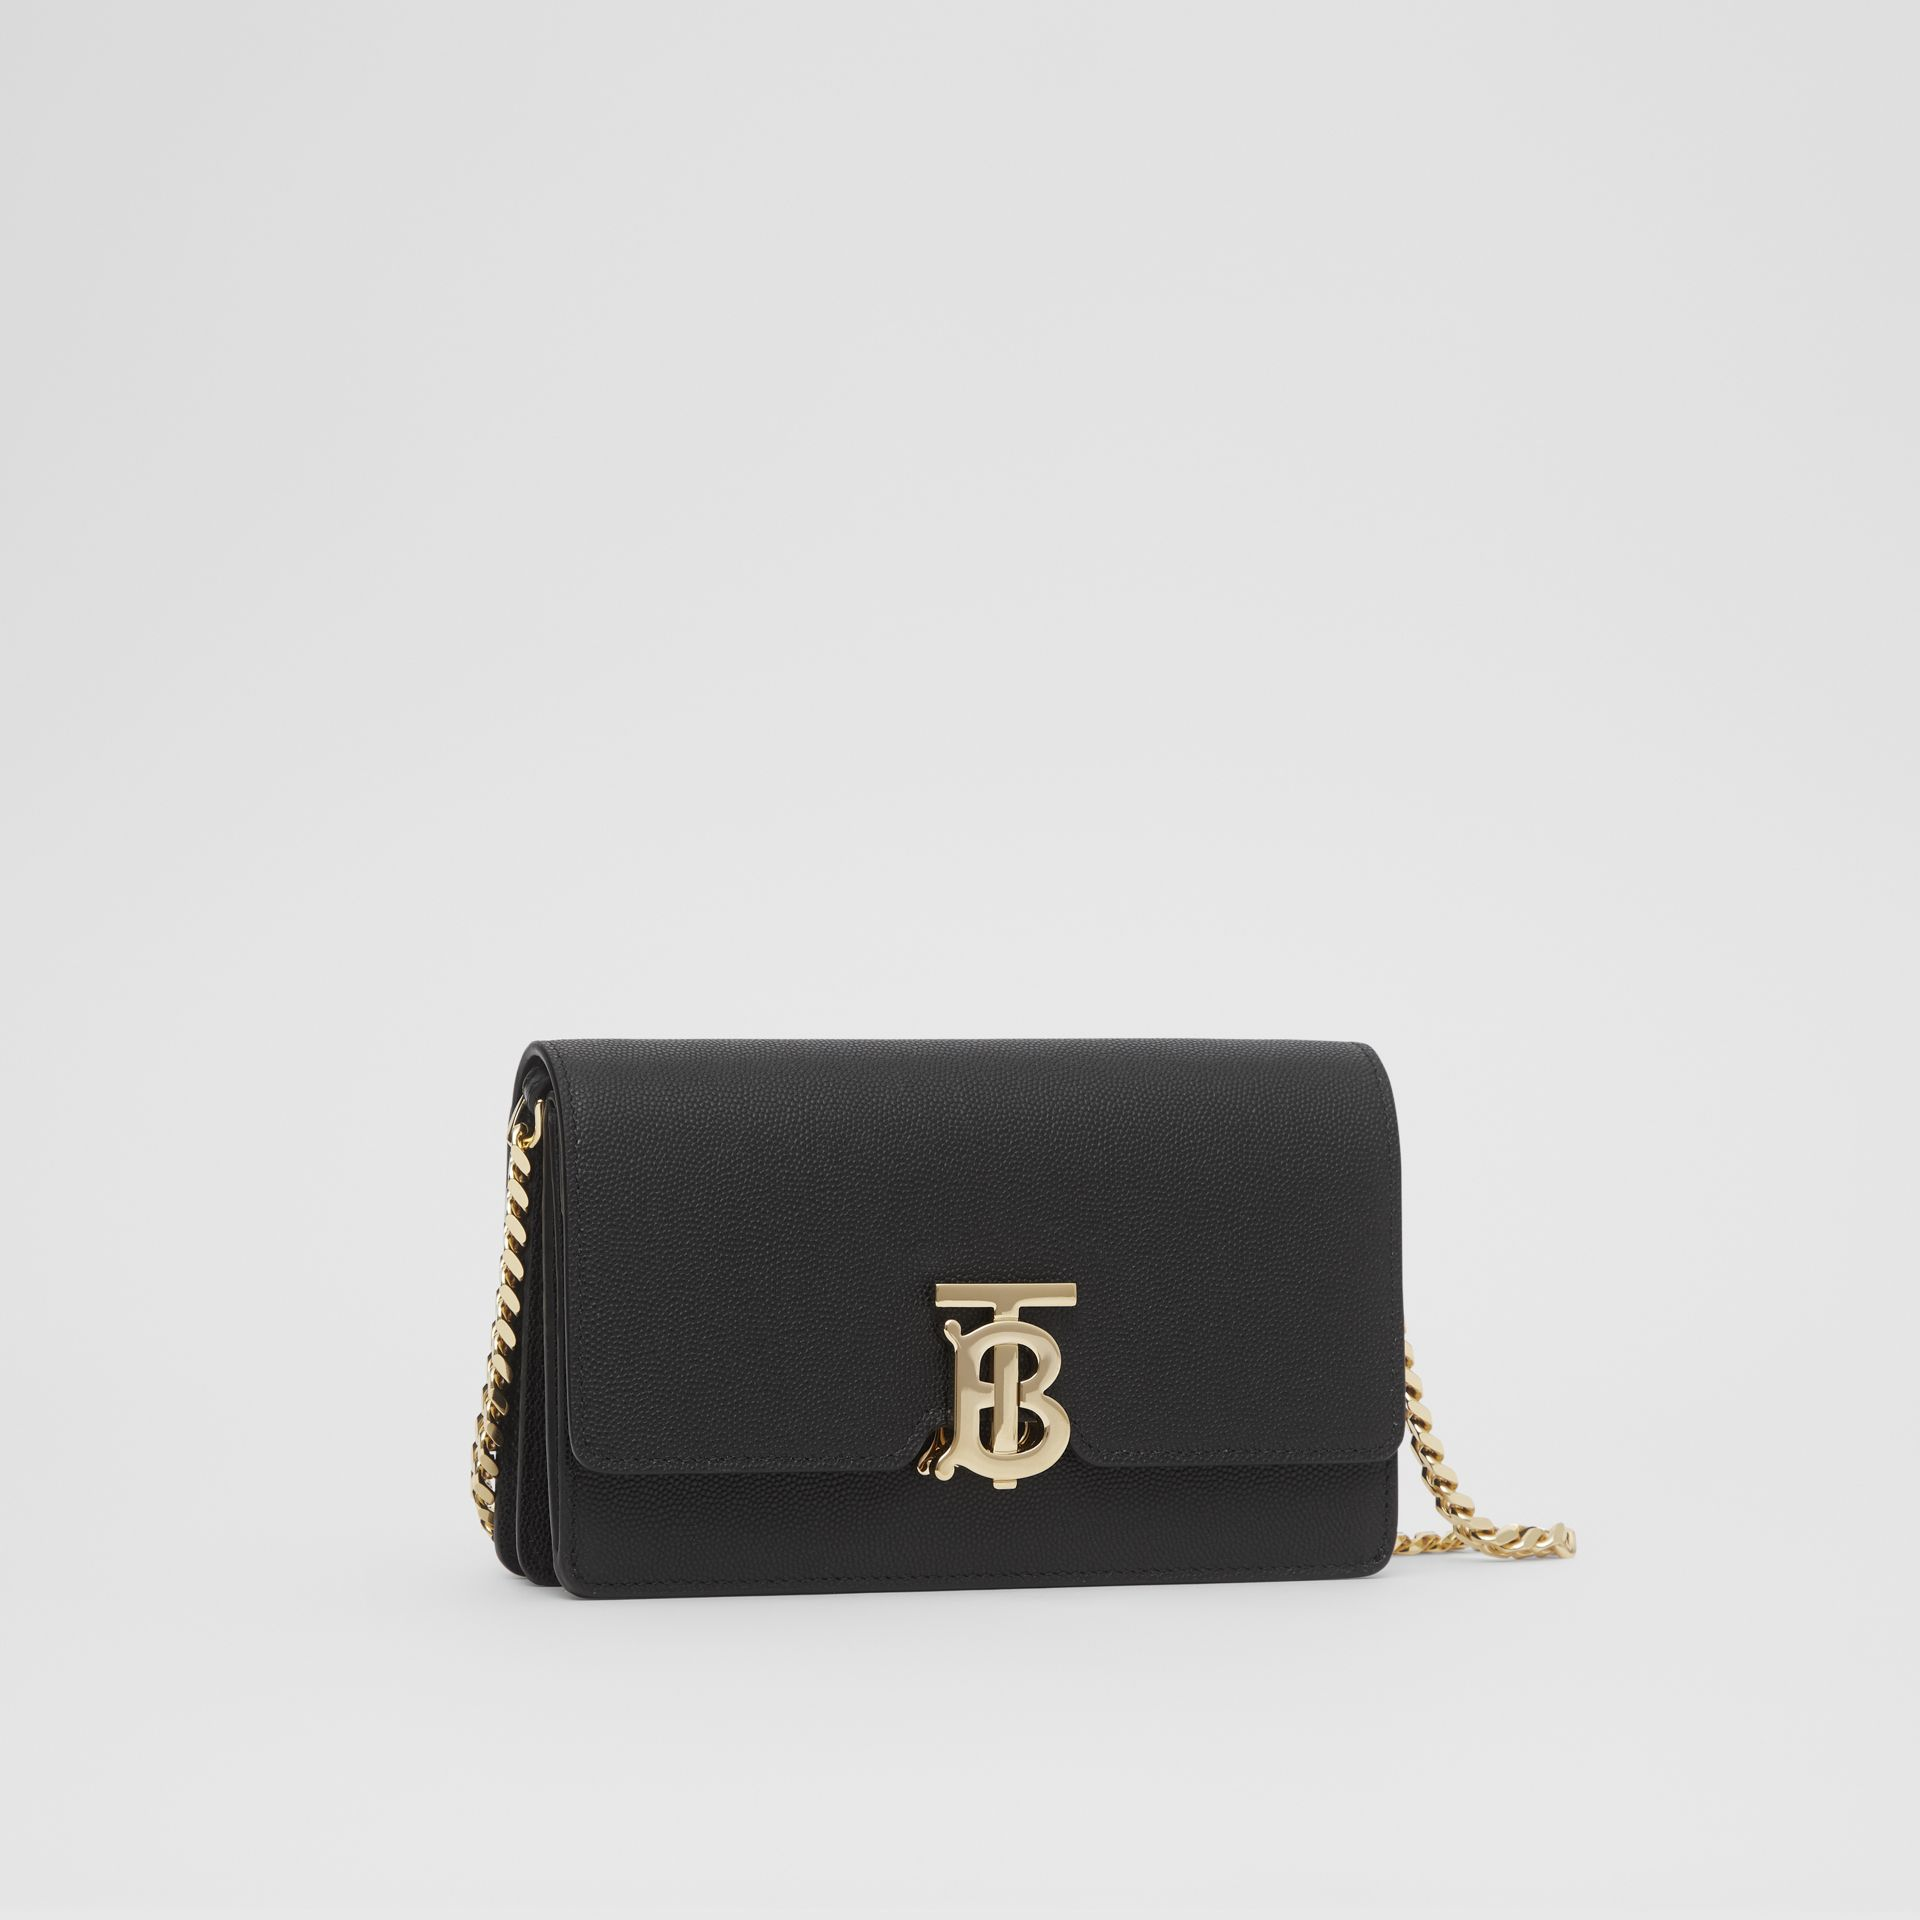 Small Grainy Leather Shoulder Bag in Black - Women | Burberry United Kingdom - gallery image 4